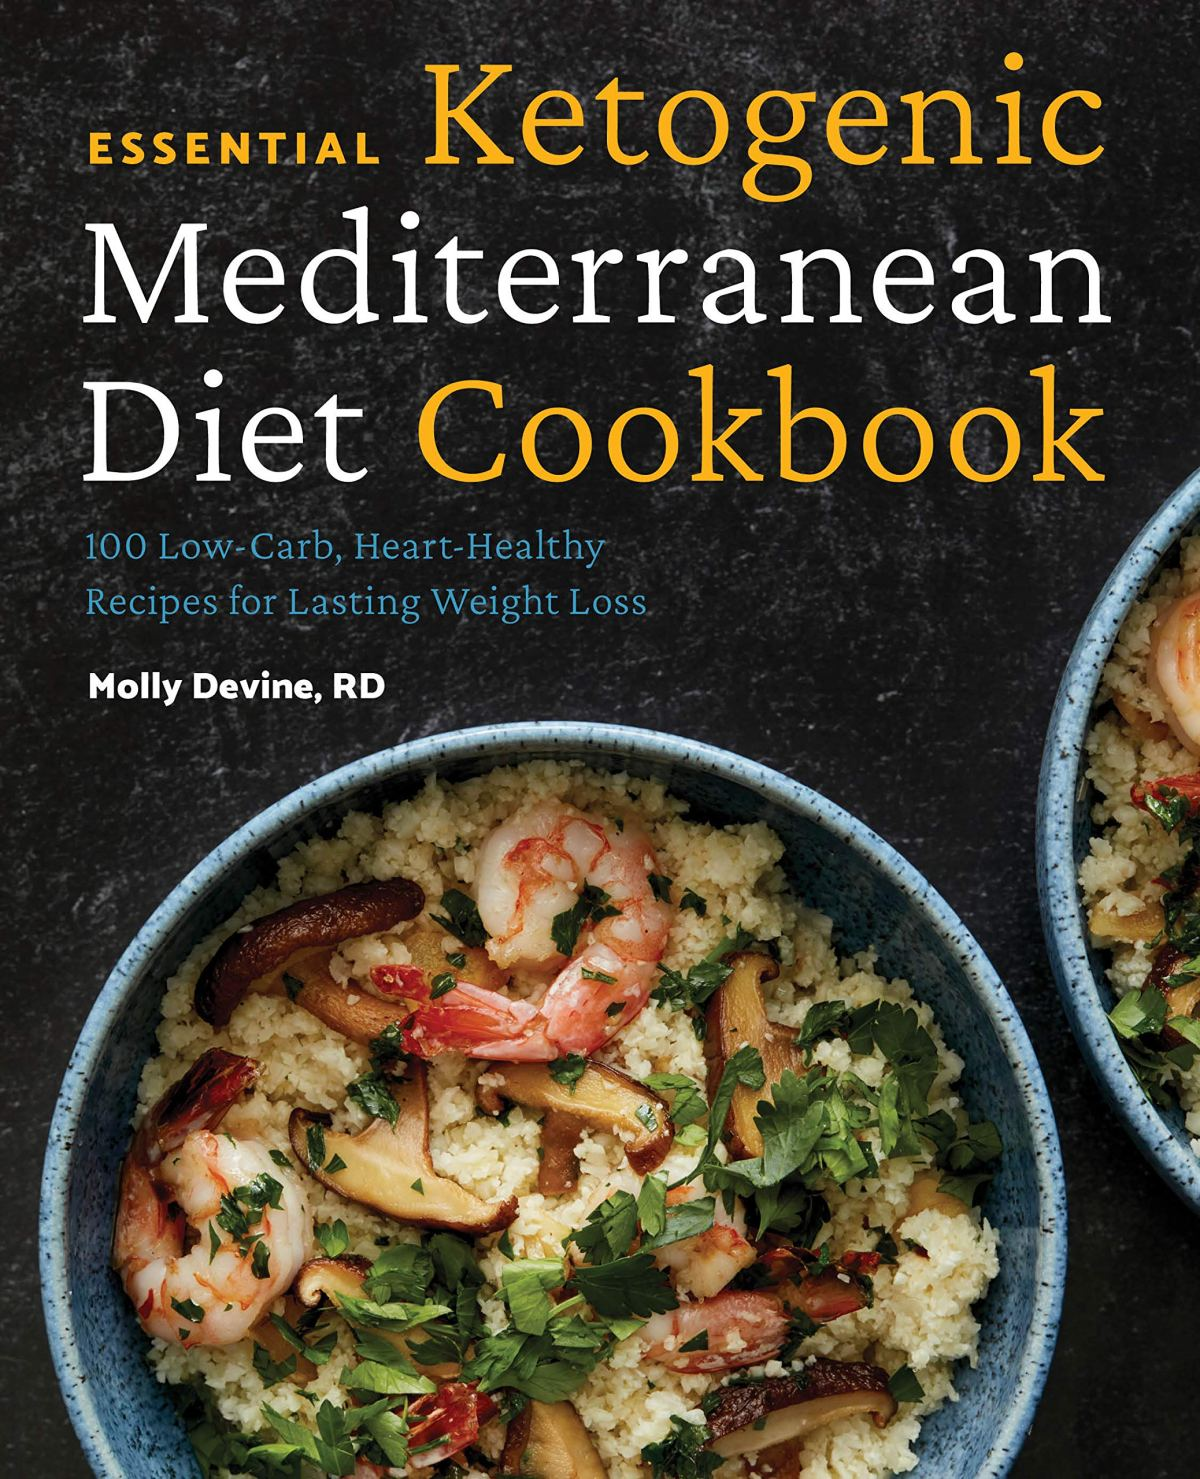 Essential Ketogenic Mediterranean Diet Cookbook: 100 Low-Carb, Heart-Healthy Recipes for Lasting Weight Loss 1